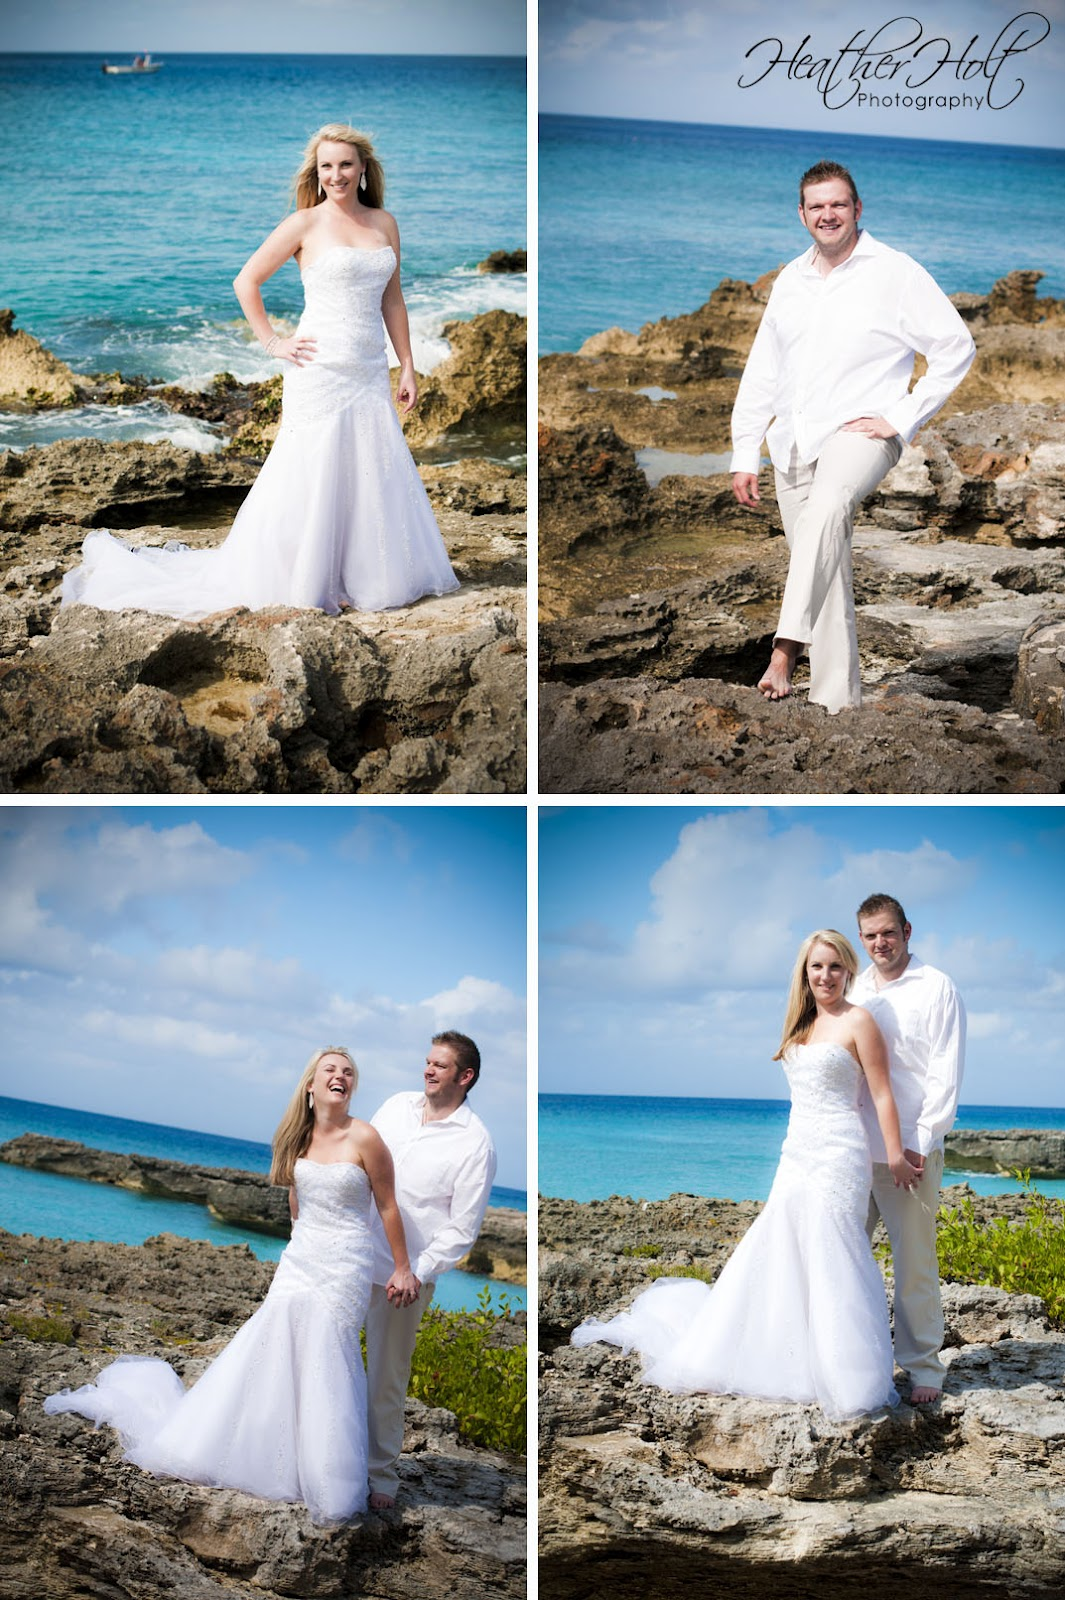 Trash the Dress Cayman Style! | Heather Holt Photography: Cayman Islands